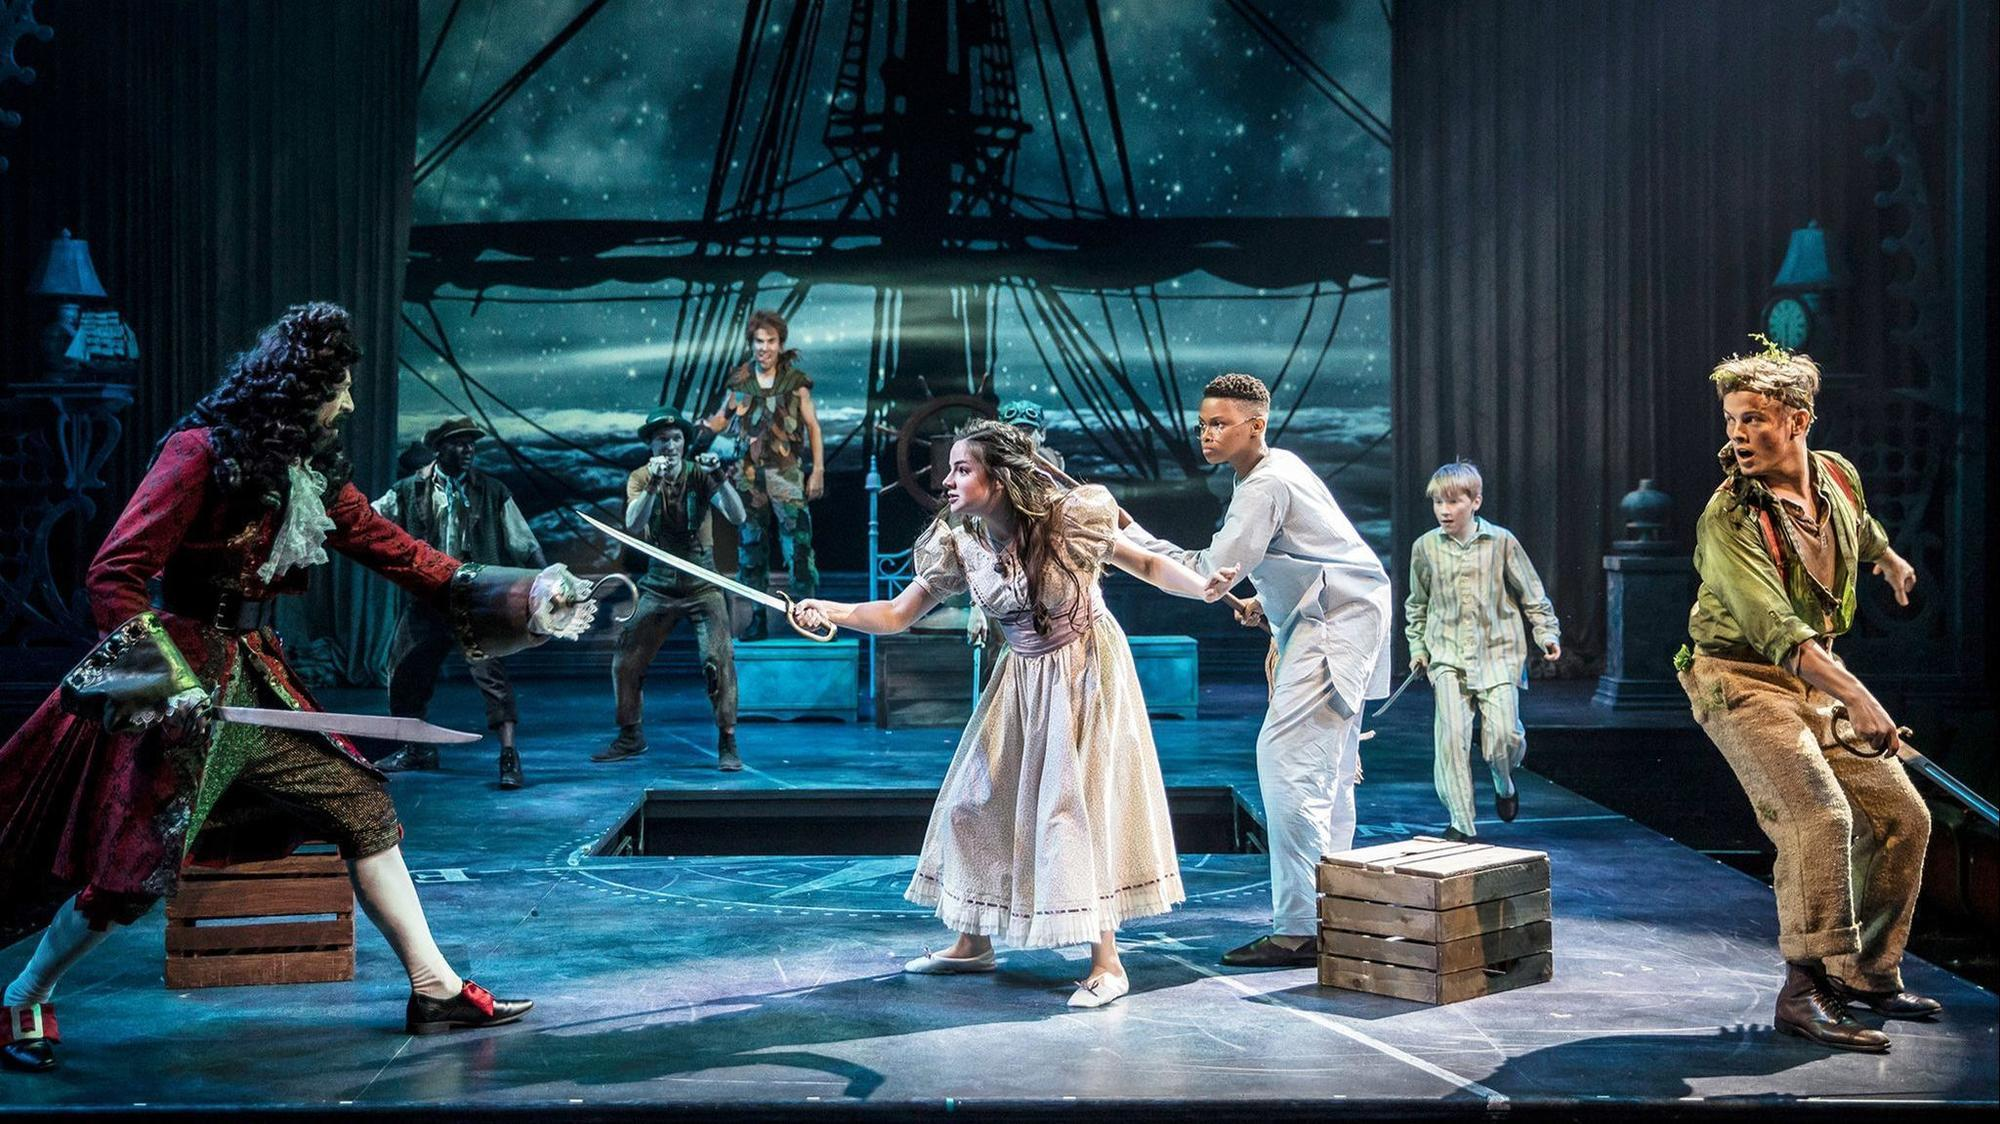 Loop And Hook >> 'Peter Pan: A Musical Adventure' review: Blink on Navy Pier and they've flown away - Chicago Tribune